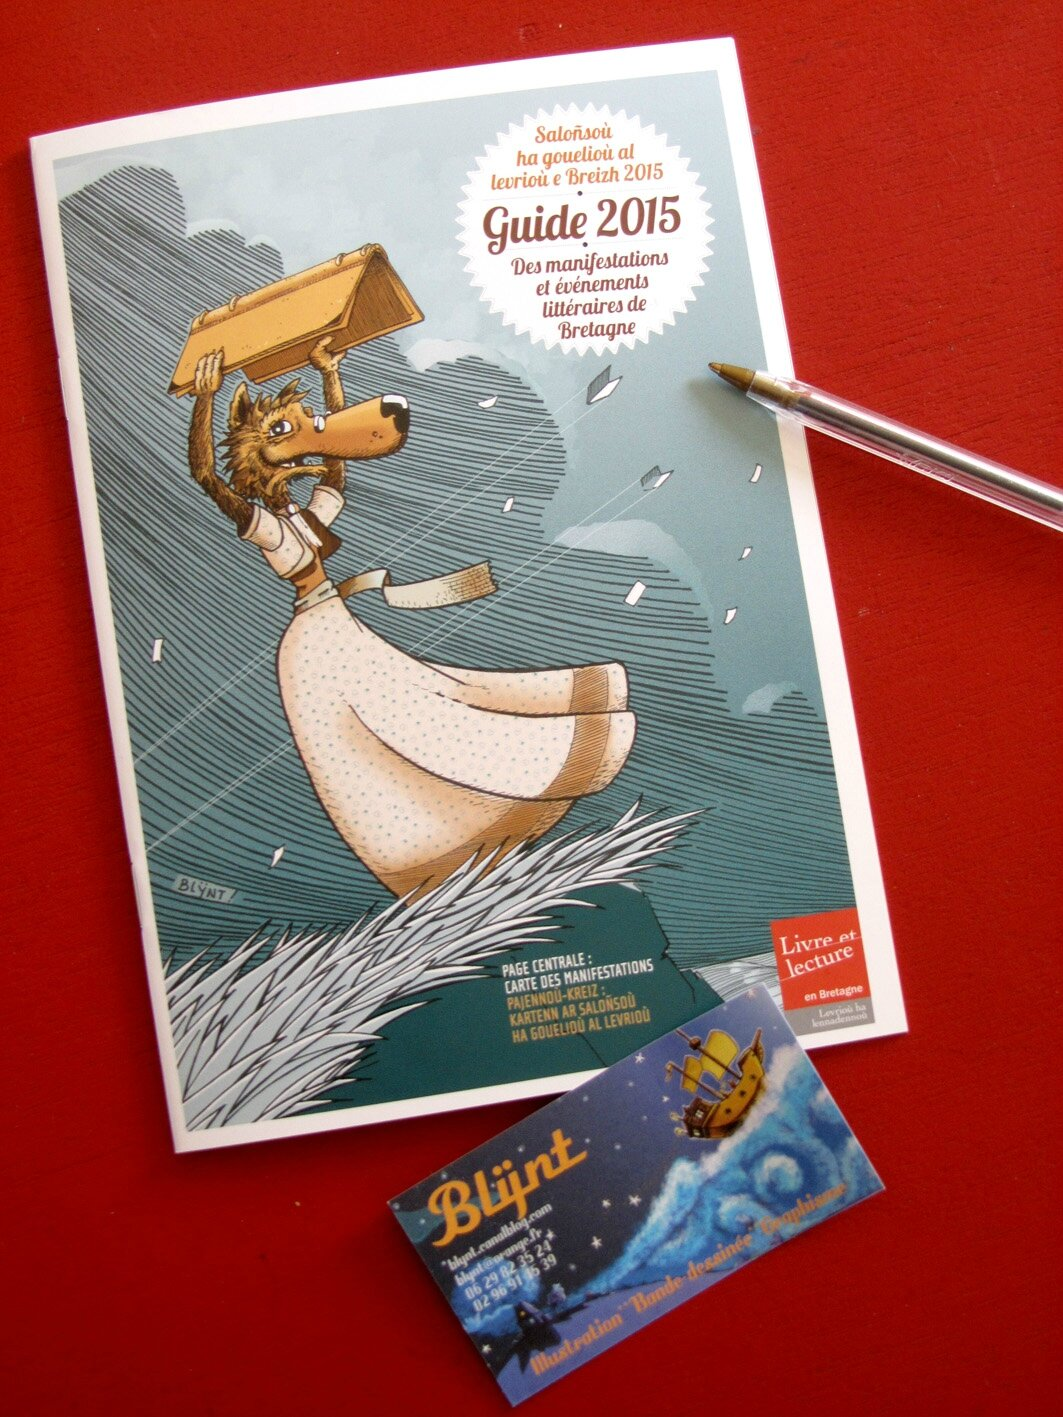 LA COUVERTURE du GUIDE 2015 !